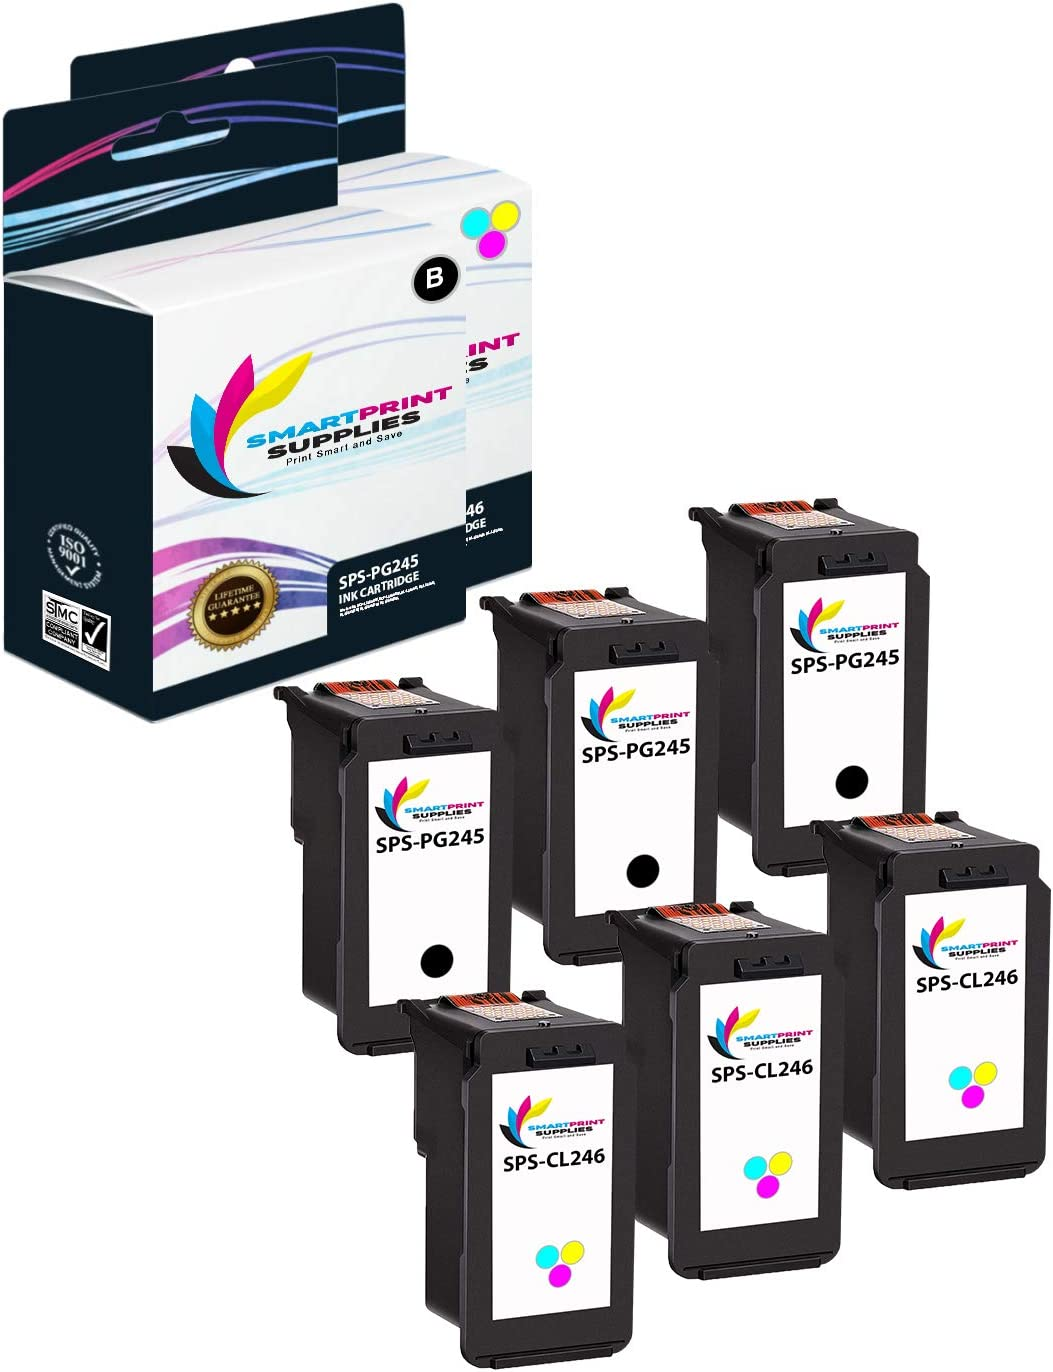 4 Black, 2 Multicolor Smart Print Supplies Compatible CL-245 CL-246 Multicolored Ink Cartridge Replacement for Canon Pixma iP2820 MX490 MX492 Printers - 6 Pack MG2420 MG2520 MG2555